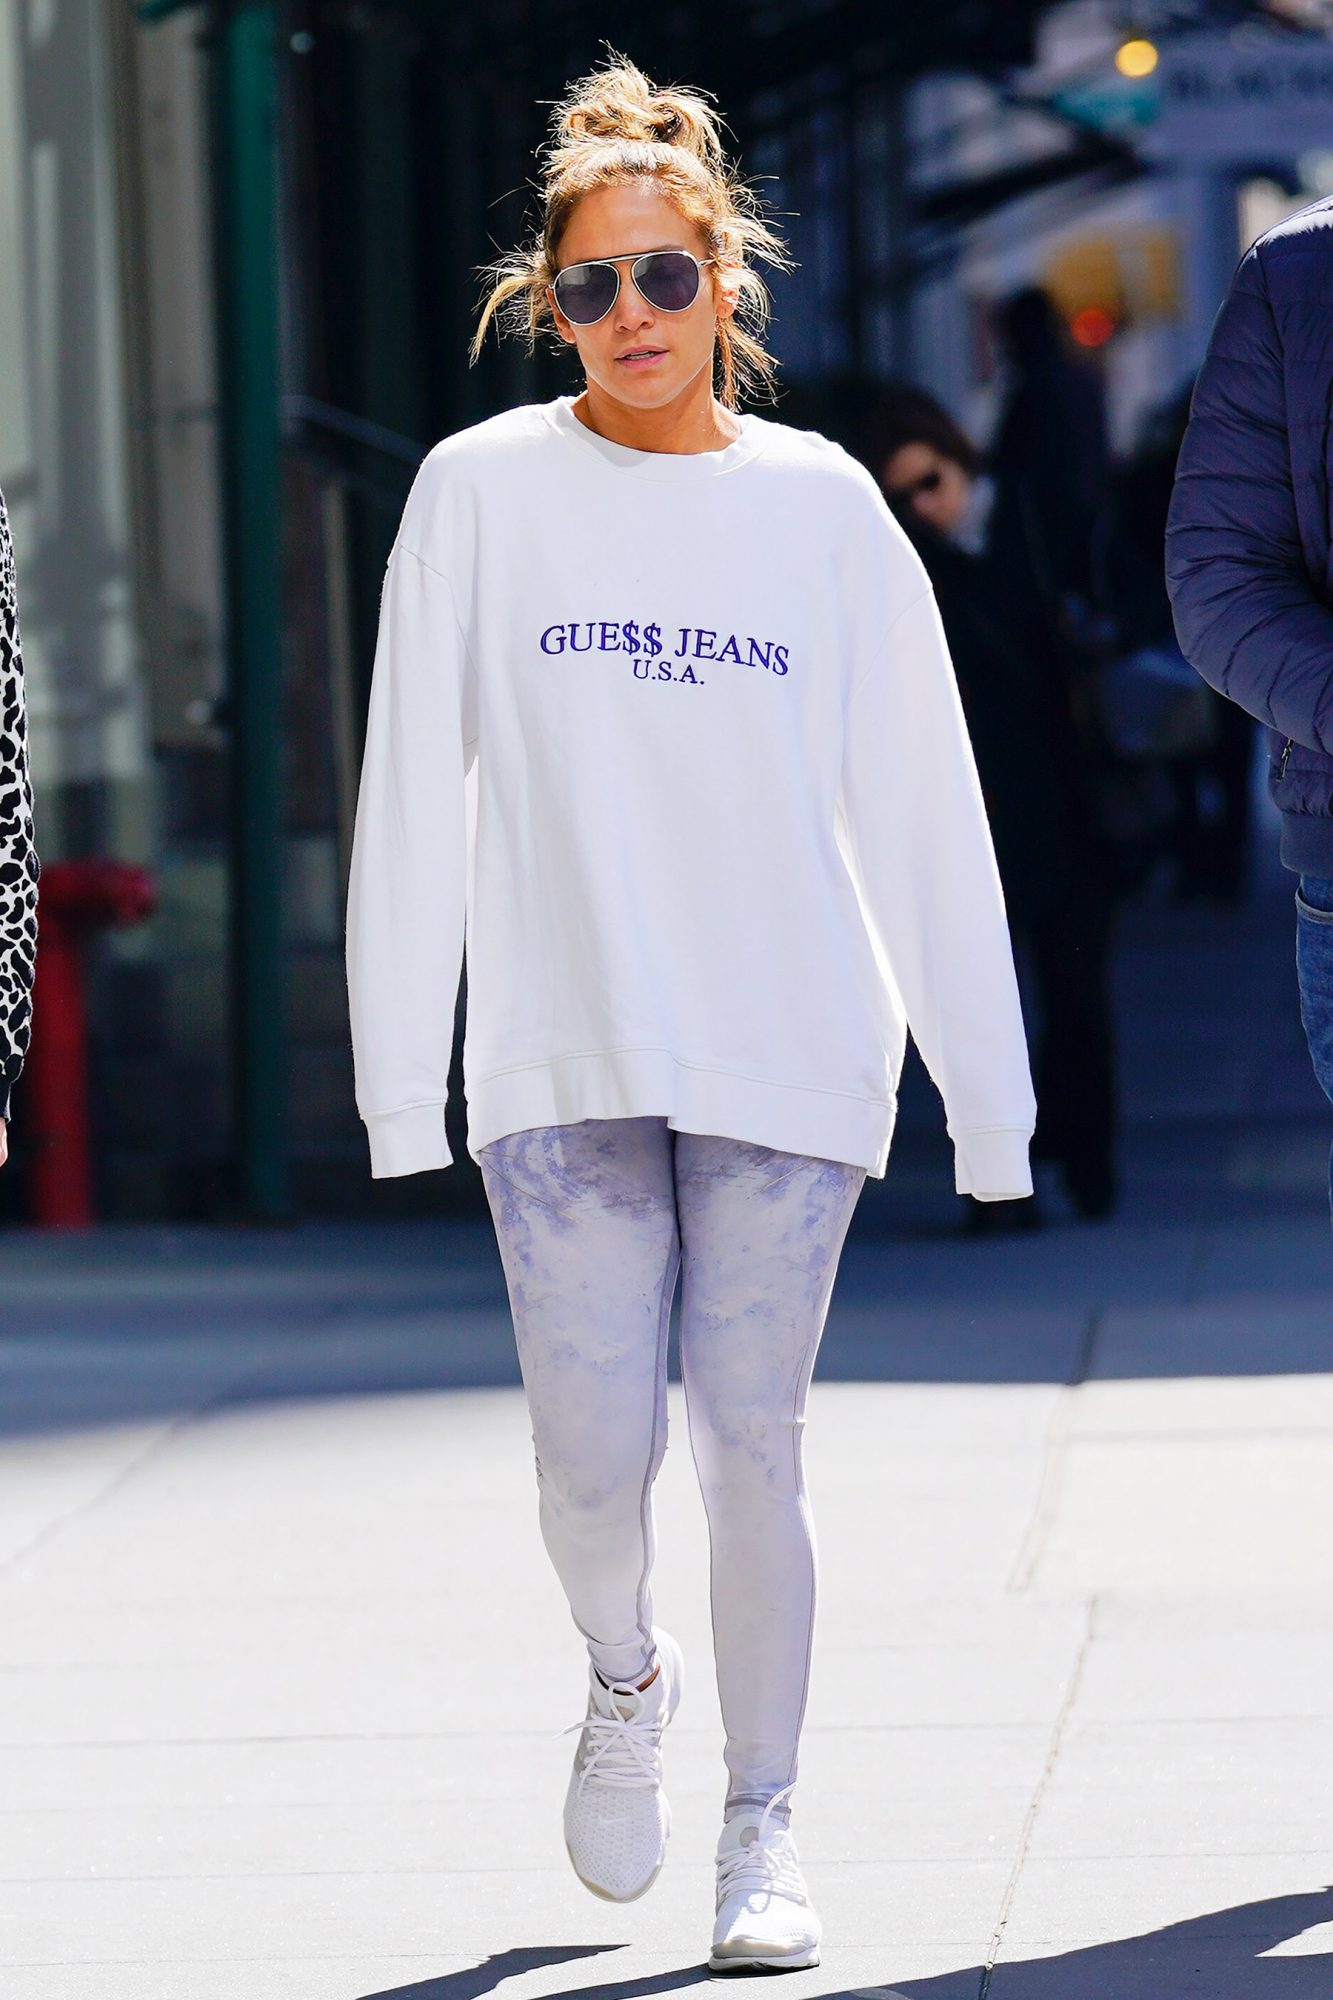 Celebrity Sightings In New York City - March 20, 2019